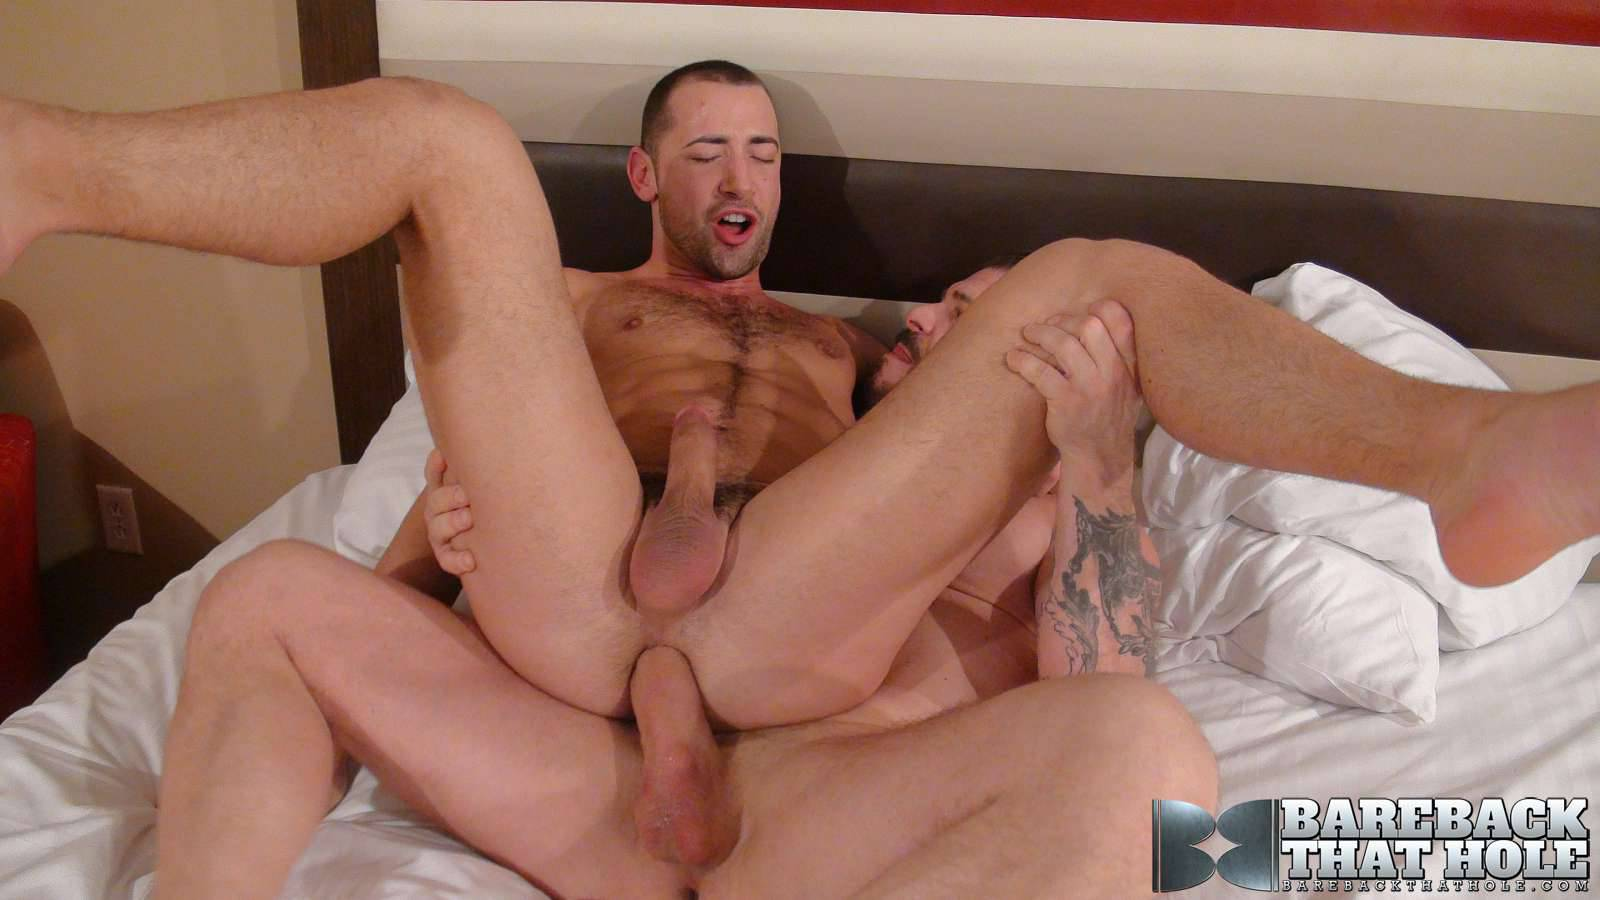 Gay sex hard with boys images all this is 3